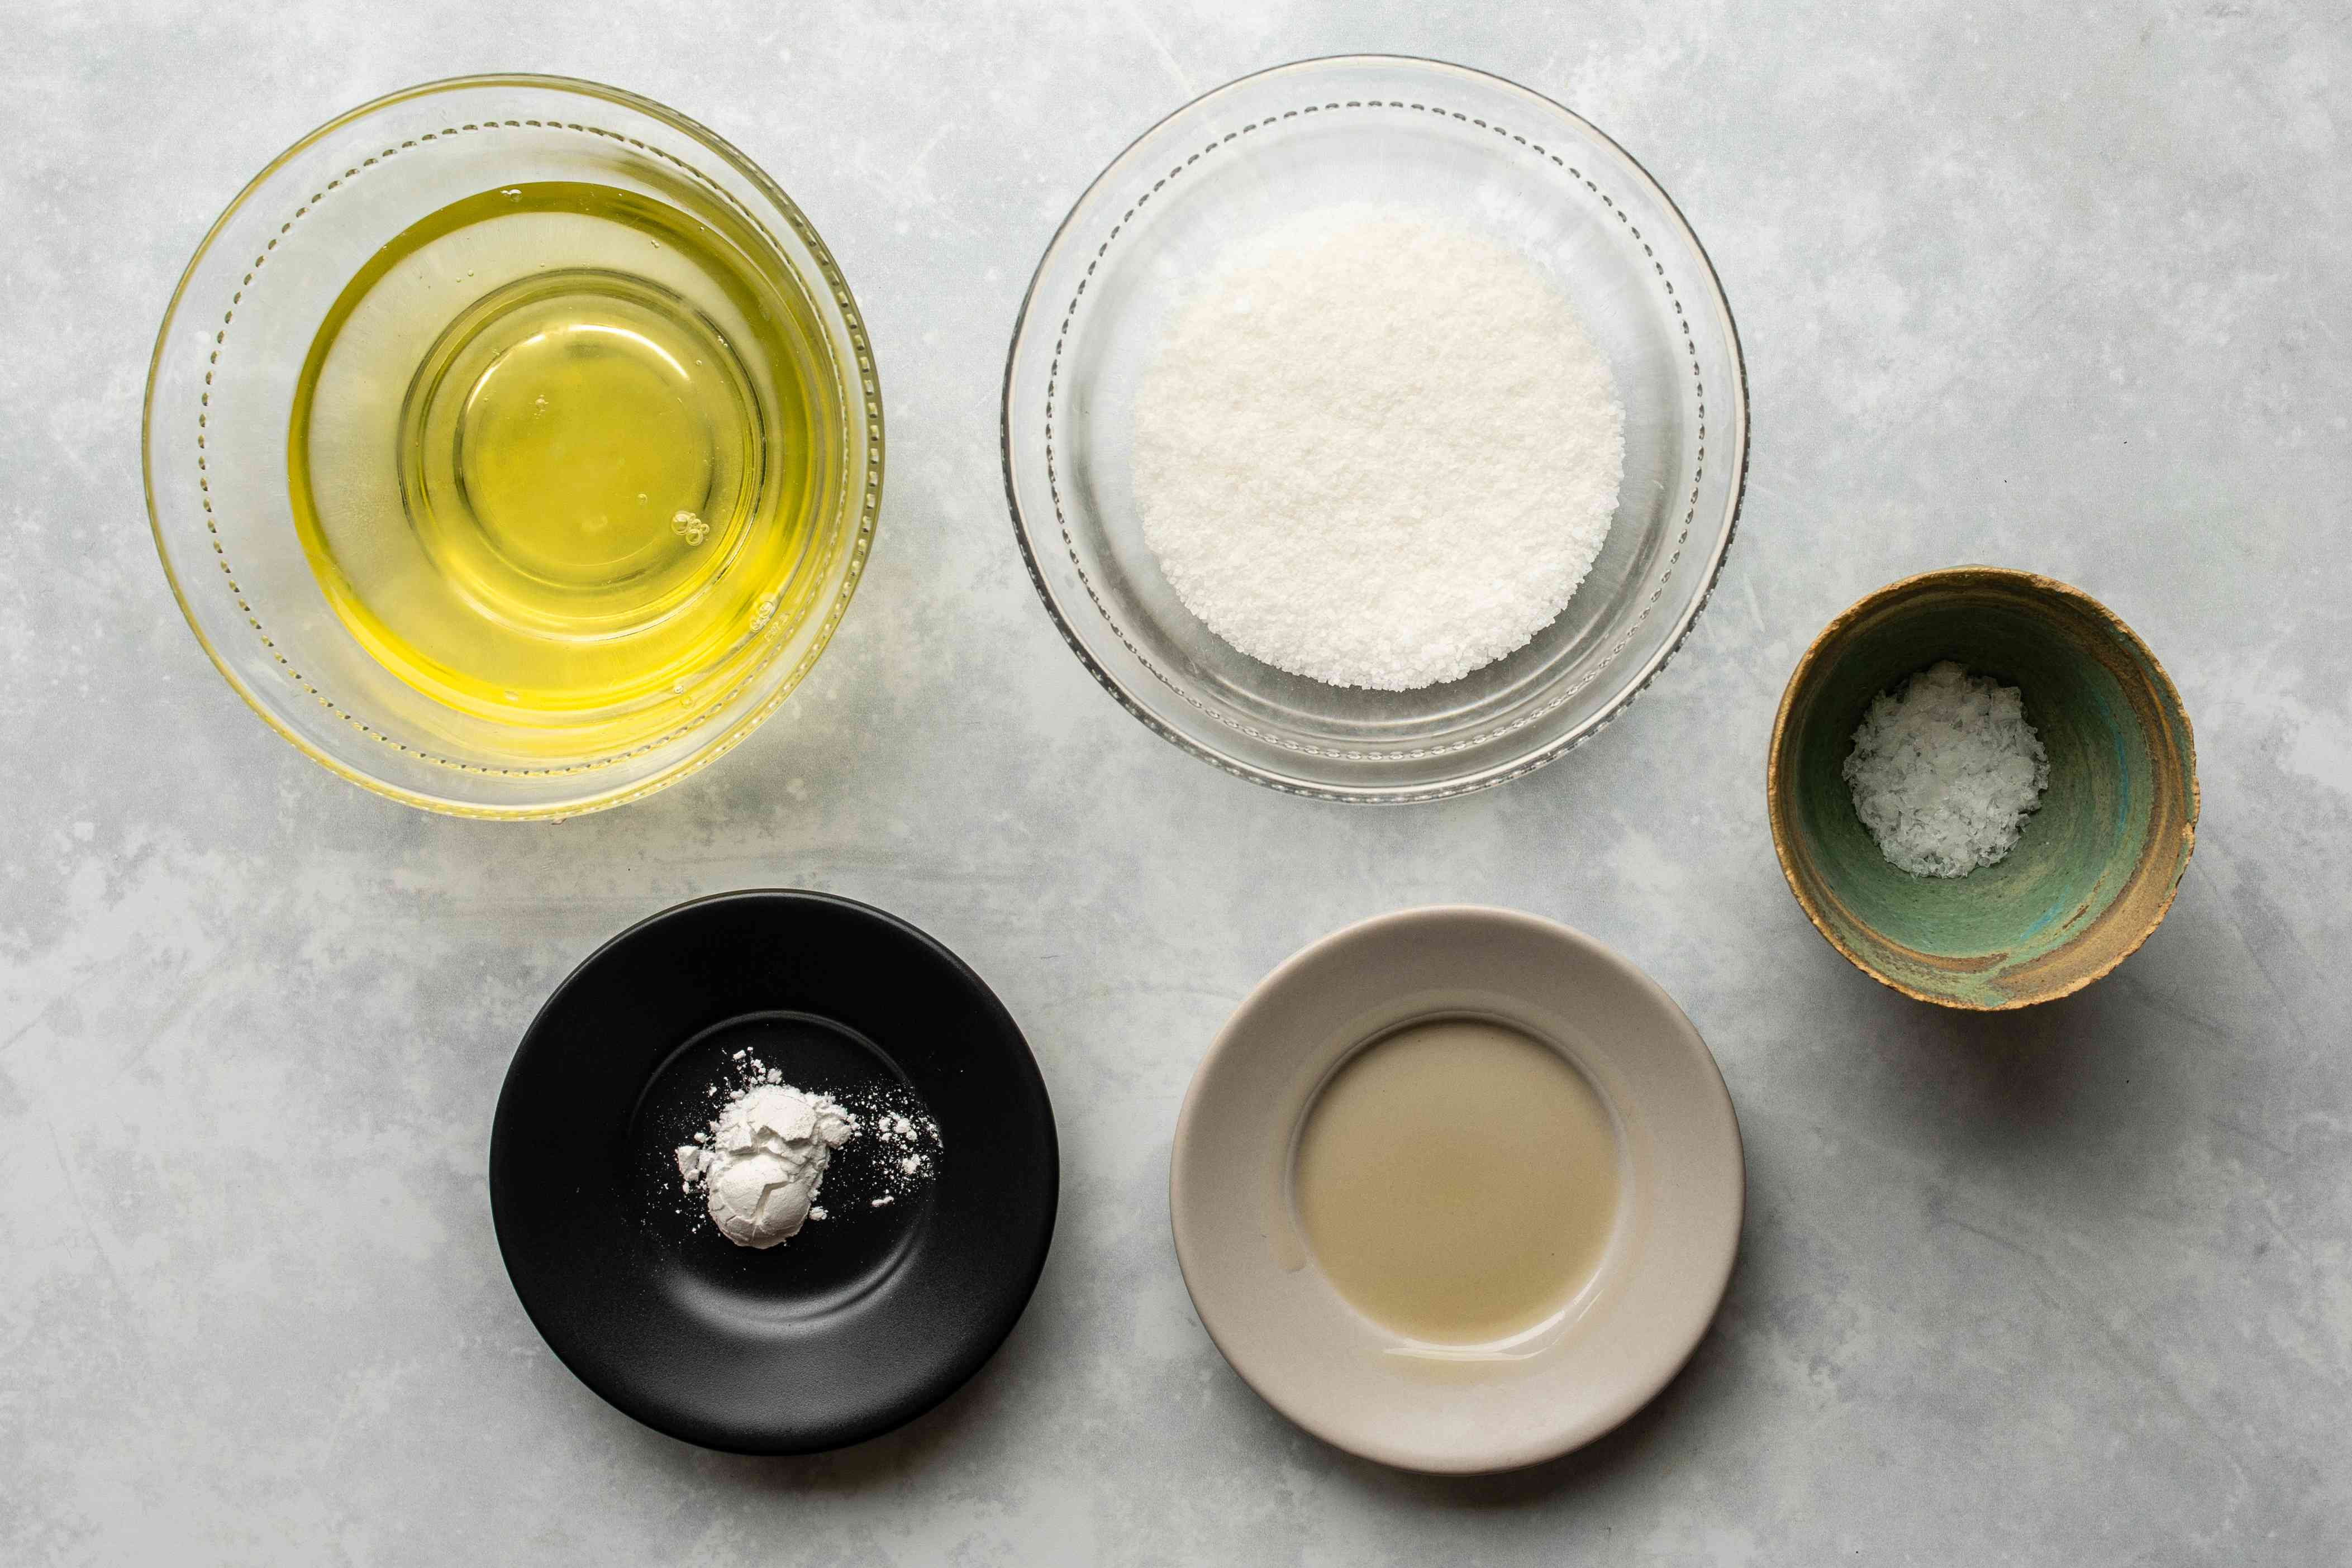 Ingredients for a classic meringue